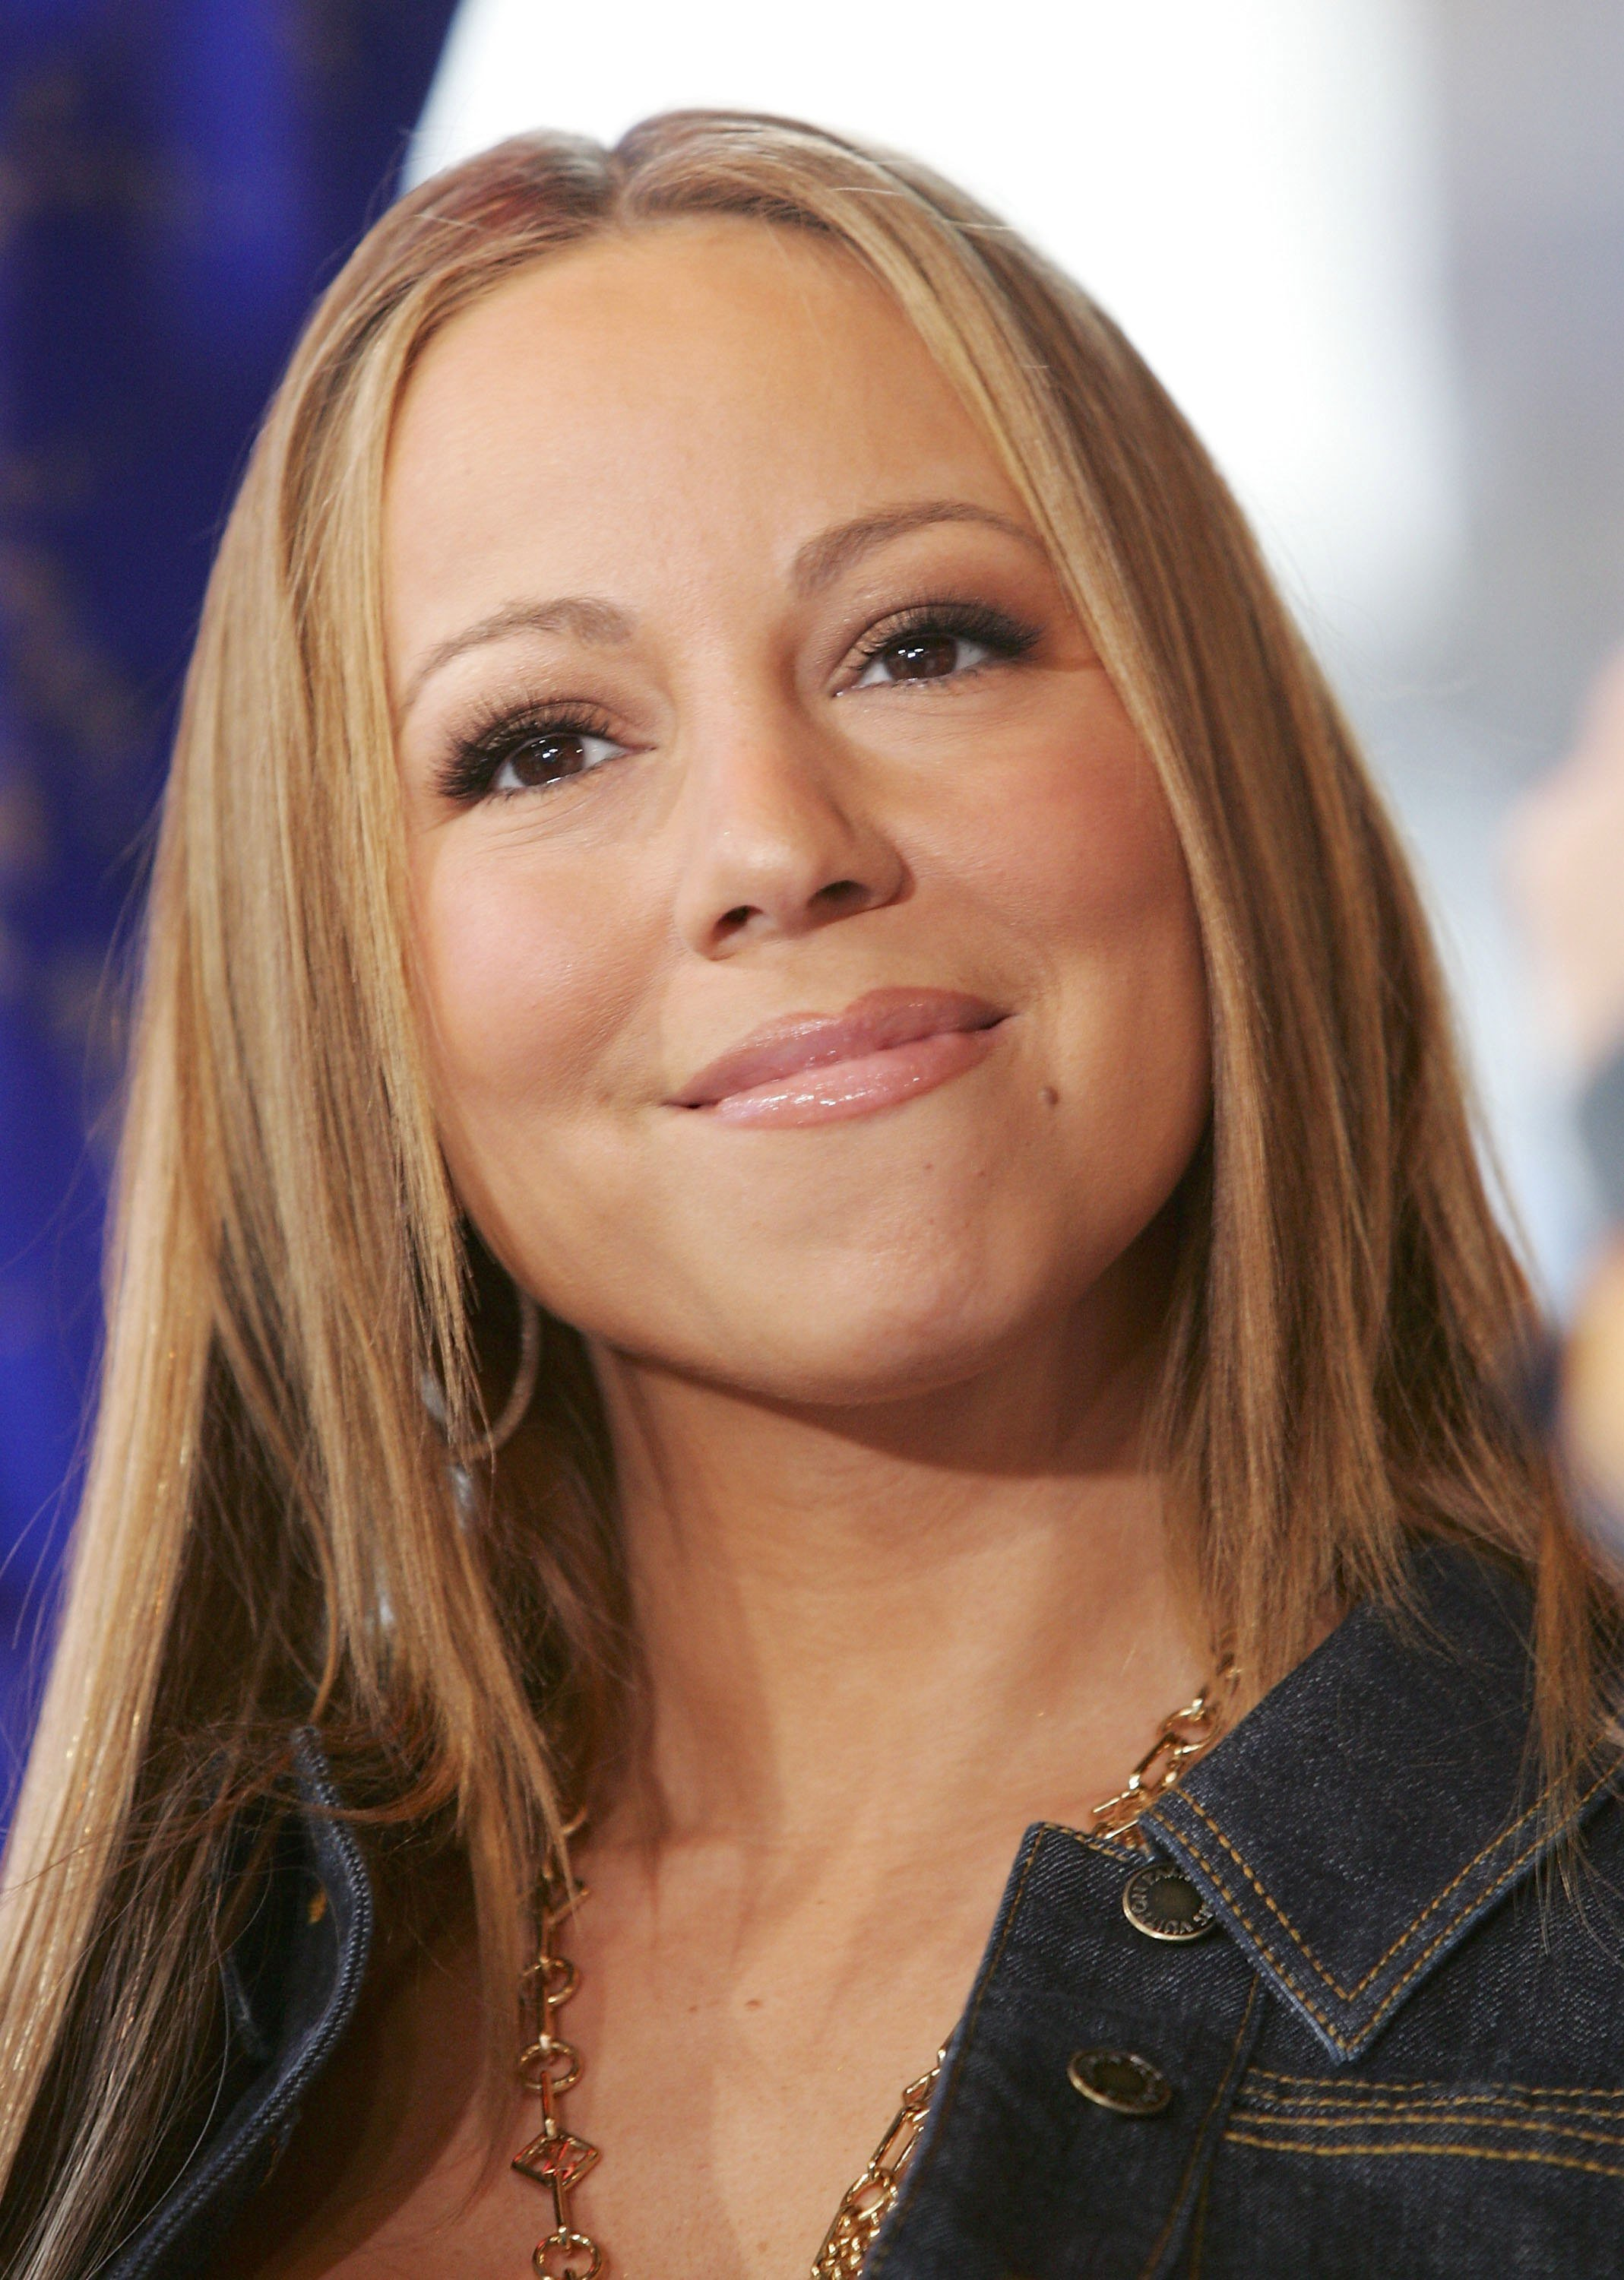 Mariah Carey making an appearance at MTV's Total Request Live in April 2006. | Photo: Getty Images